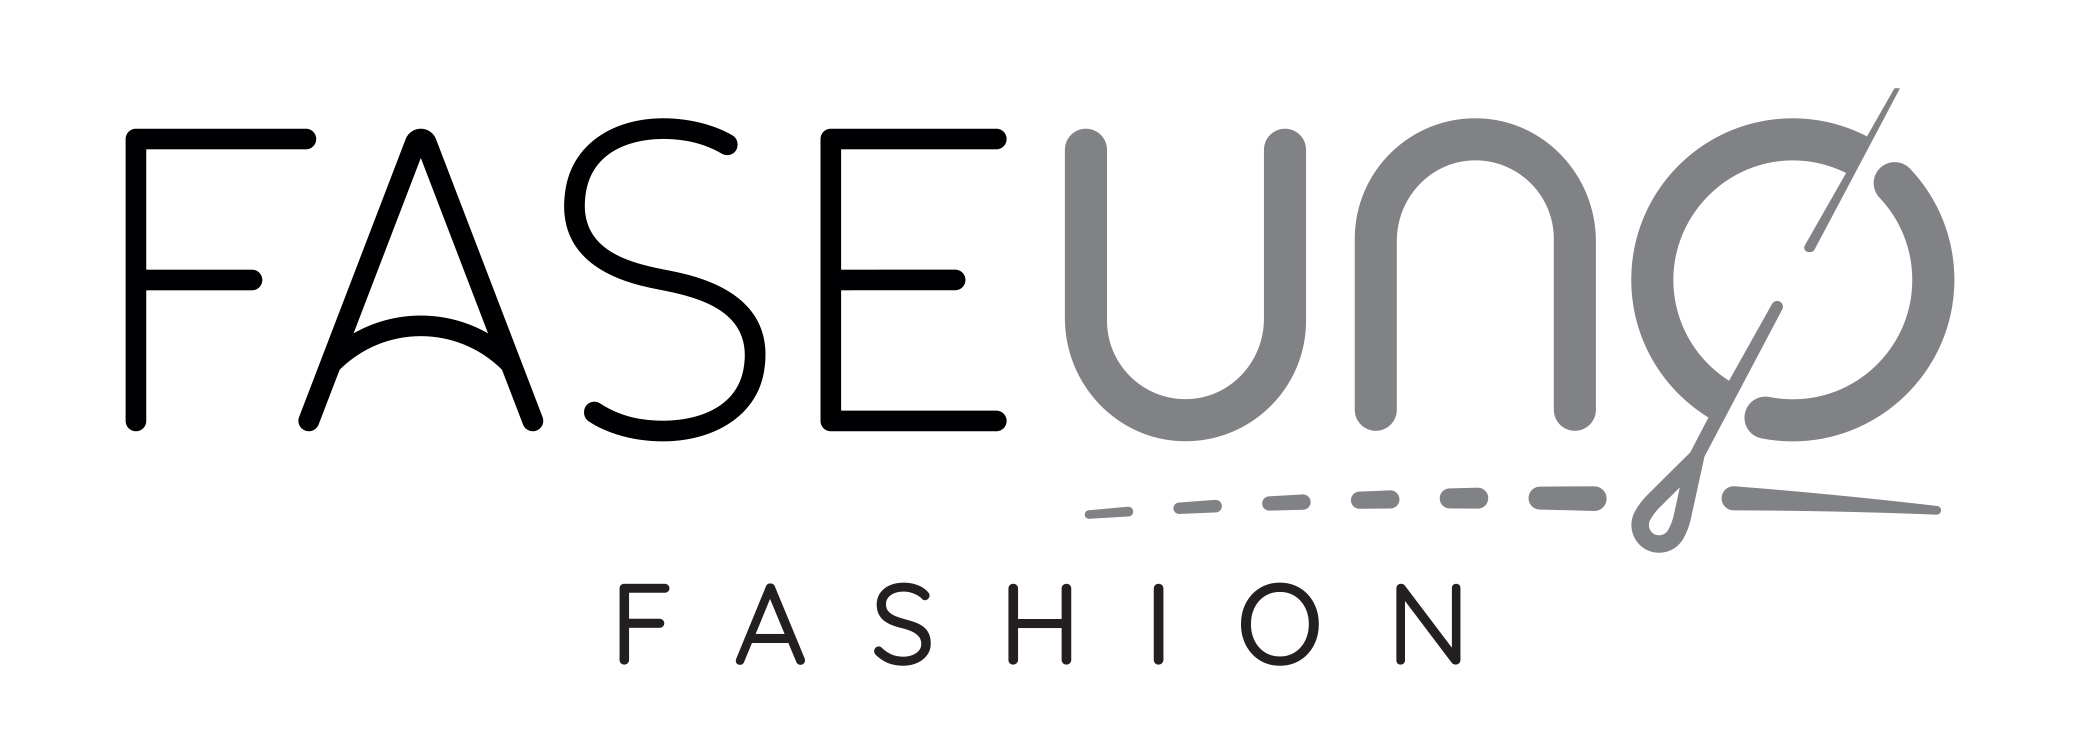 Fase Uno Fashion Logo